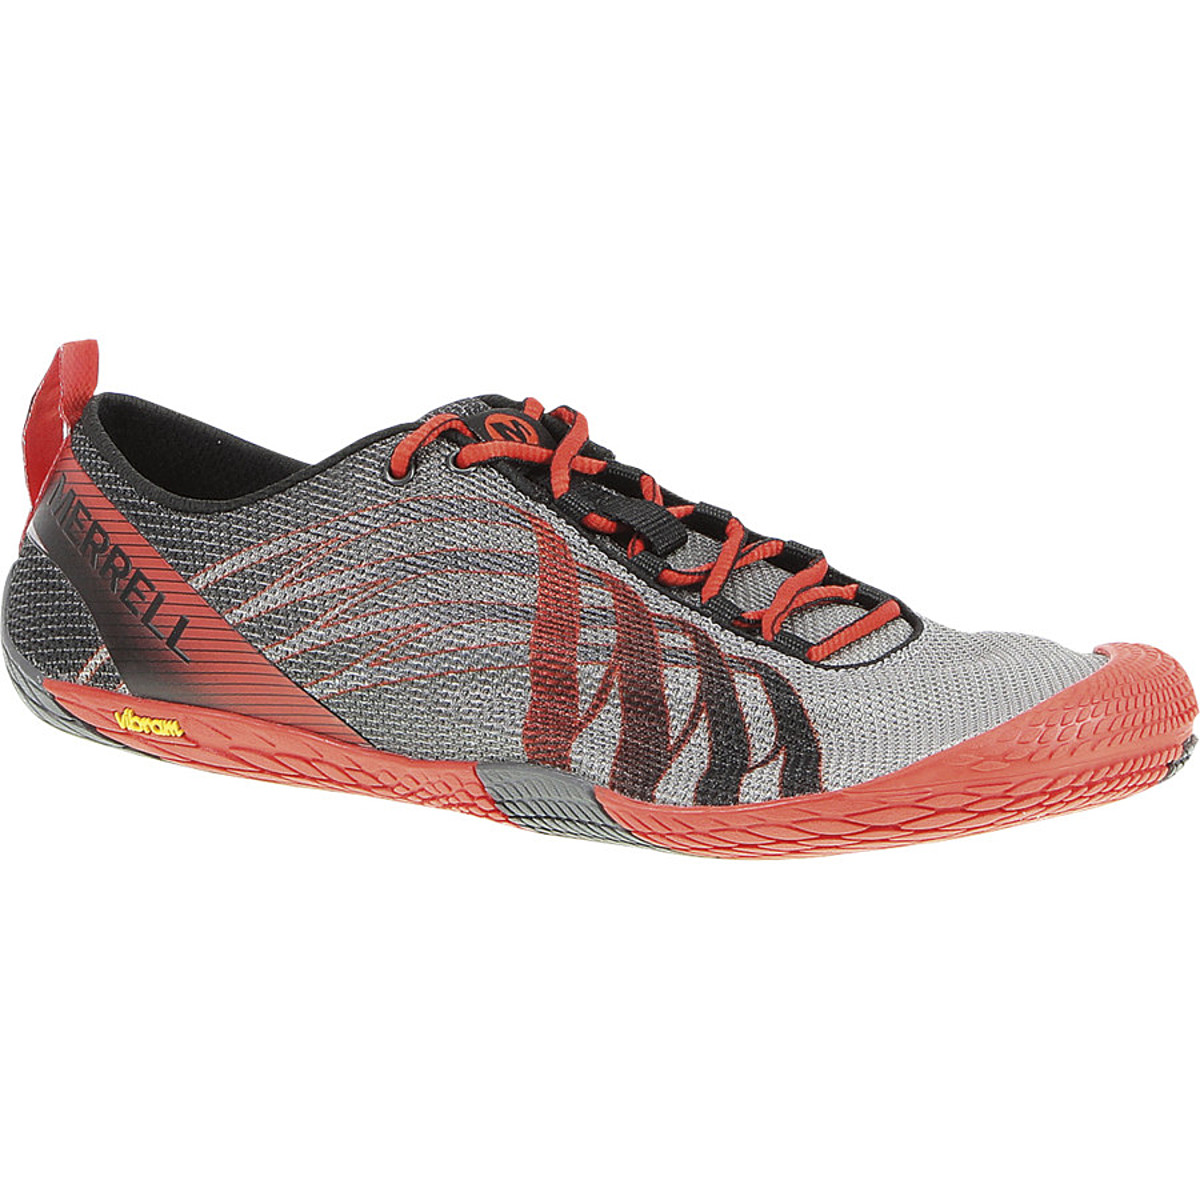 photo: Merrell Men's Barefoot Run Vapor Glove barefoot / minimal shoe